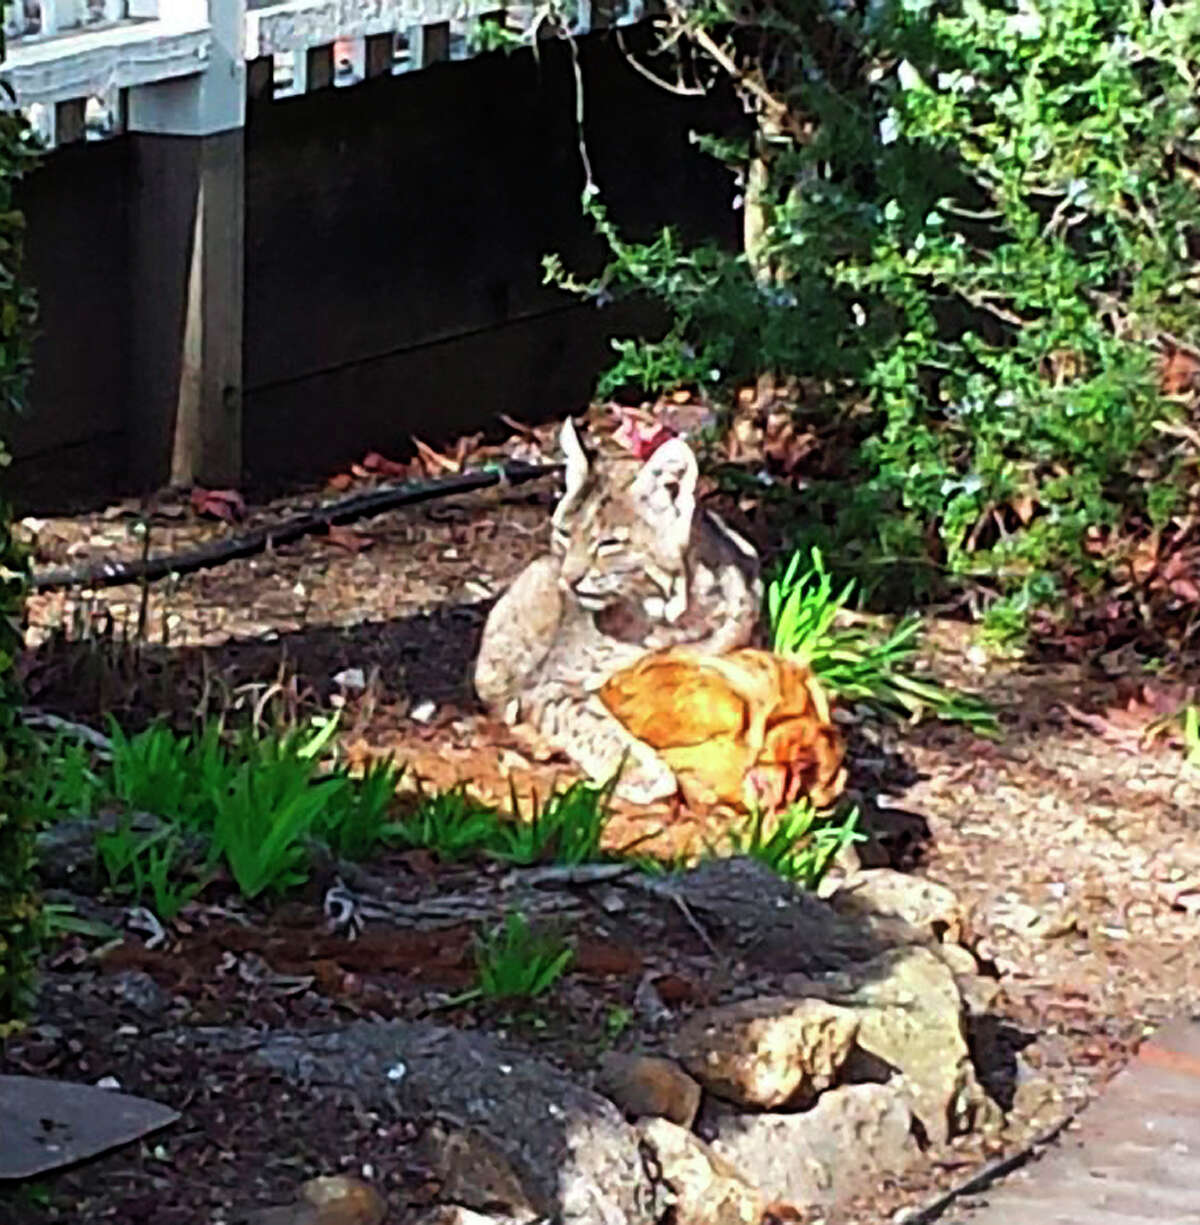 In Fairfax, a bobcat takes a break while having its dinner - a chicken raided from a local coop.